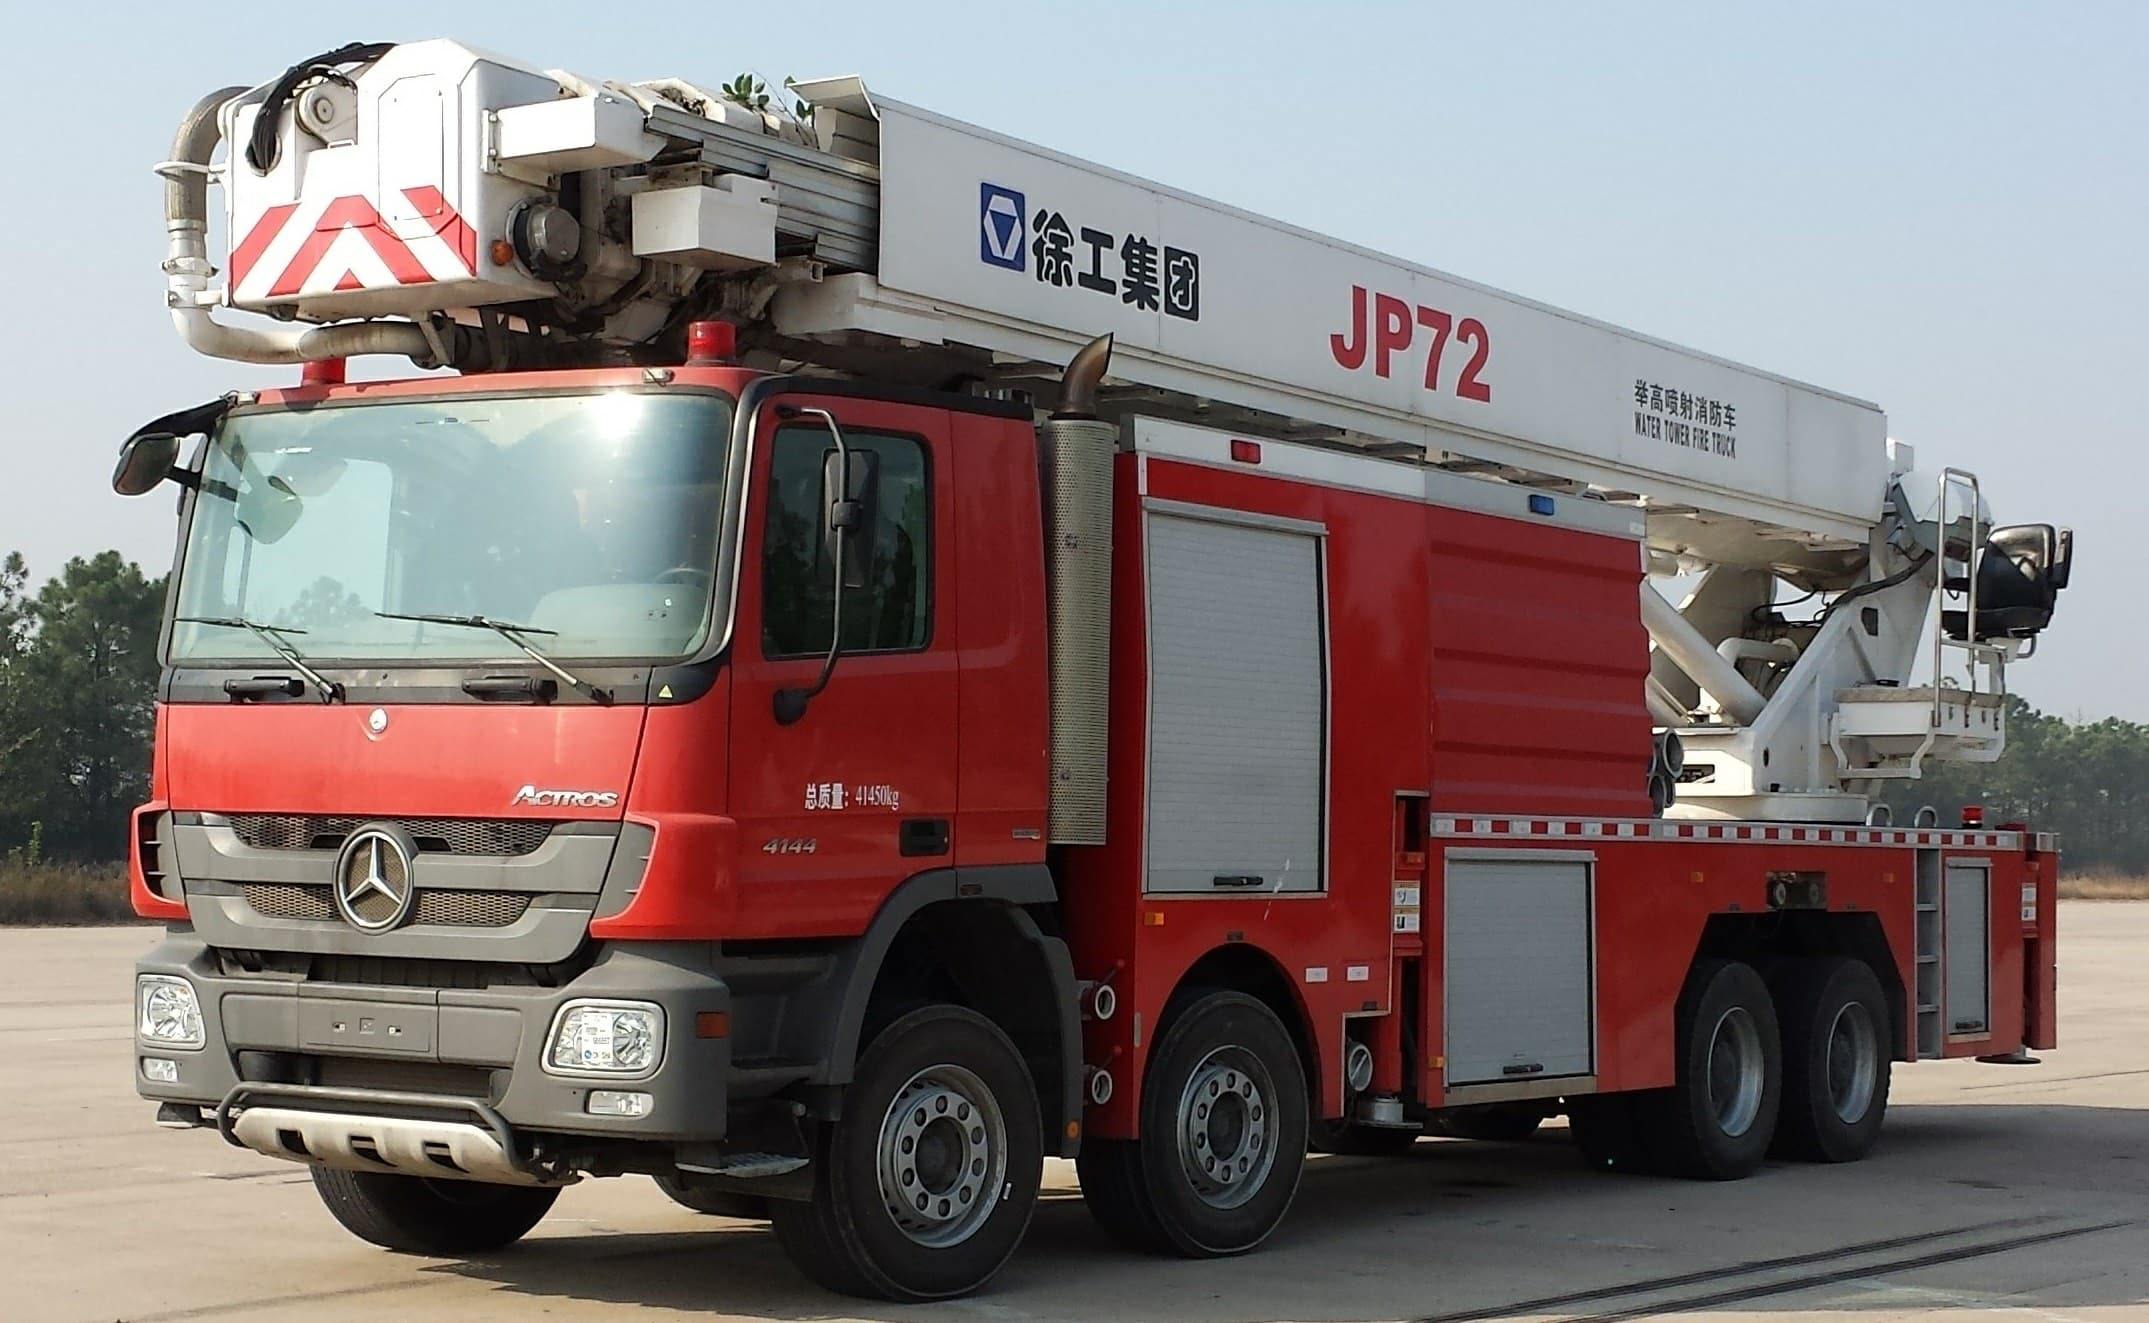 XCMG Official 72m Water Tower Fire Truck JP72 for sale